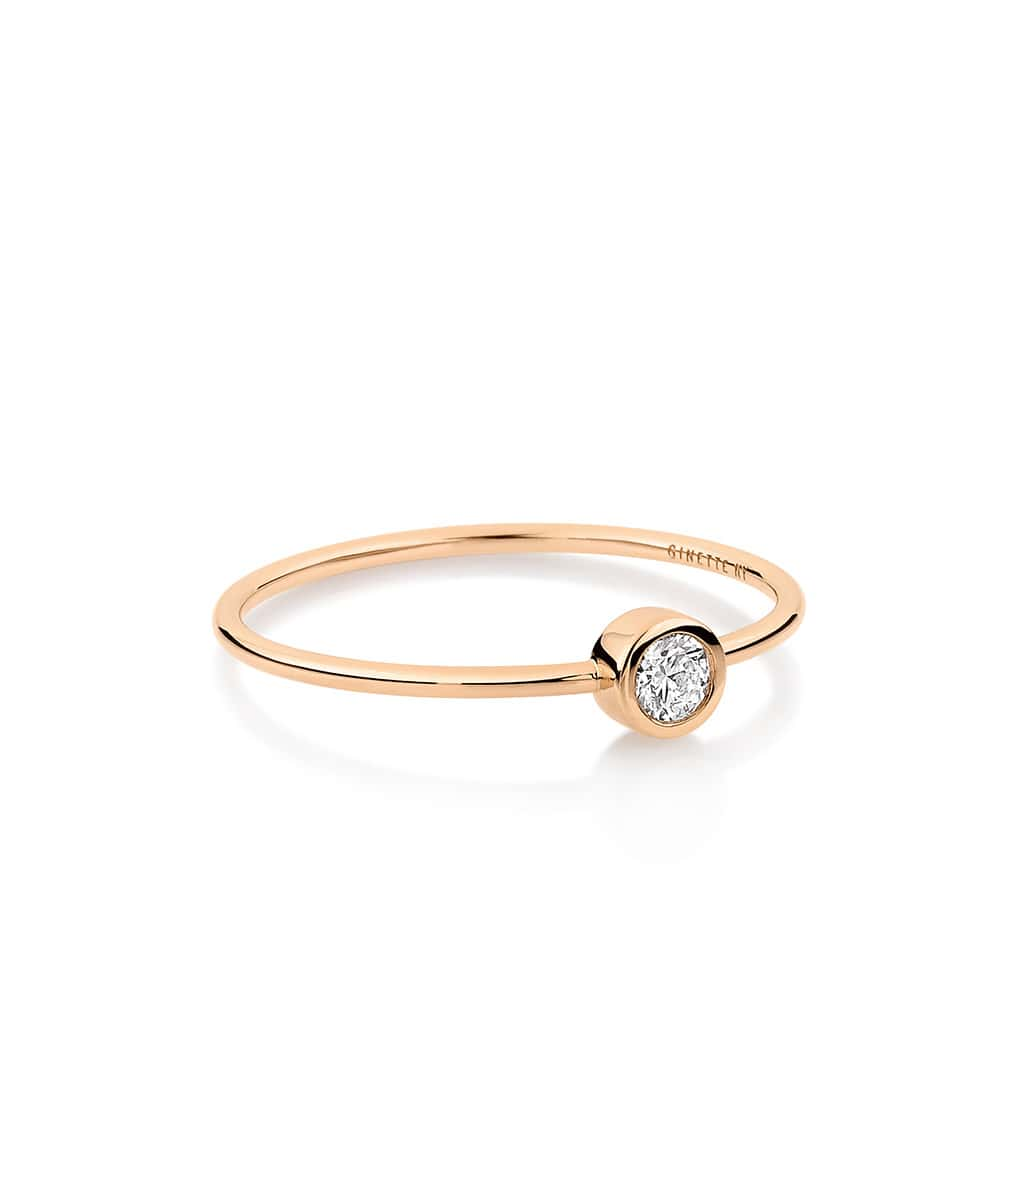 GINETTE_NY - Bague Lonely Diamonds Medium Diamants Or Rose